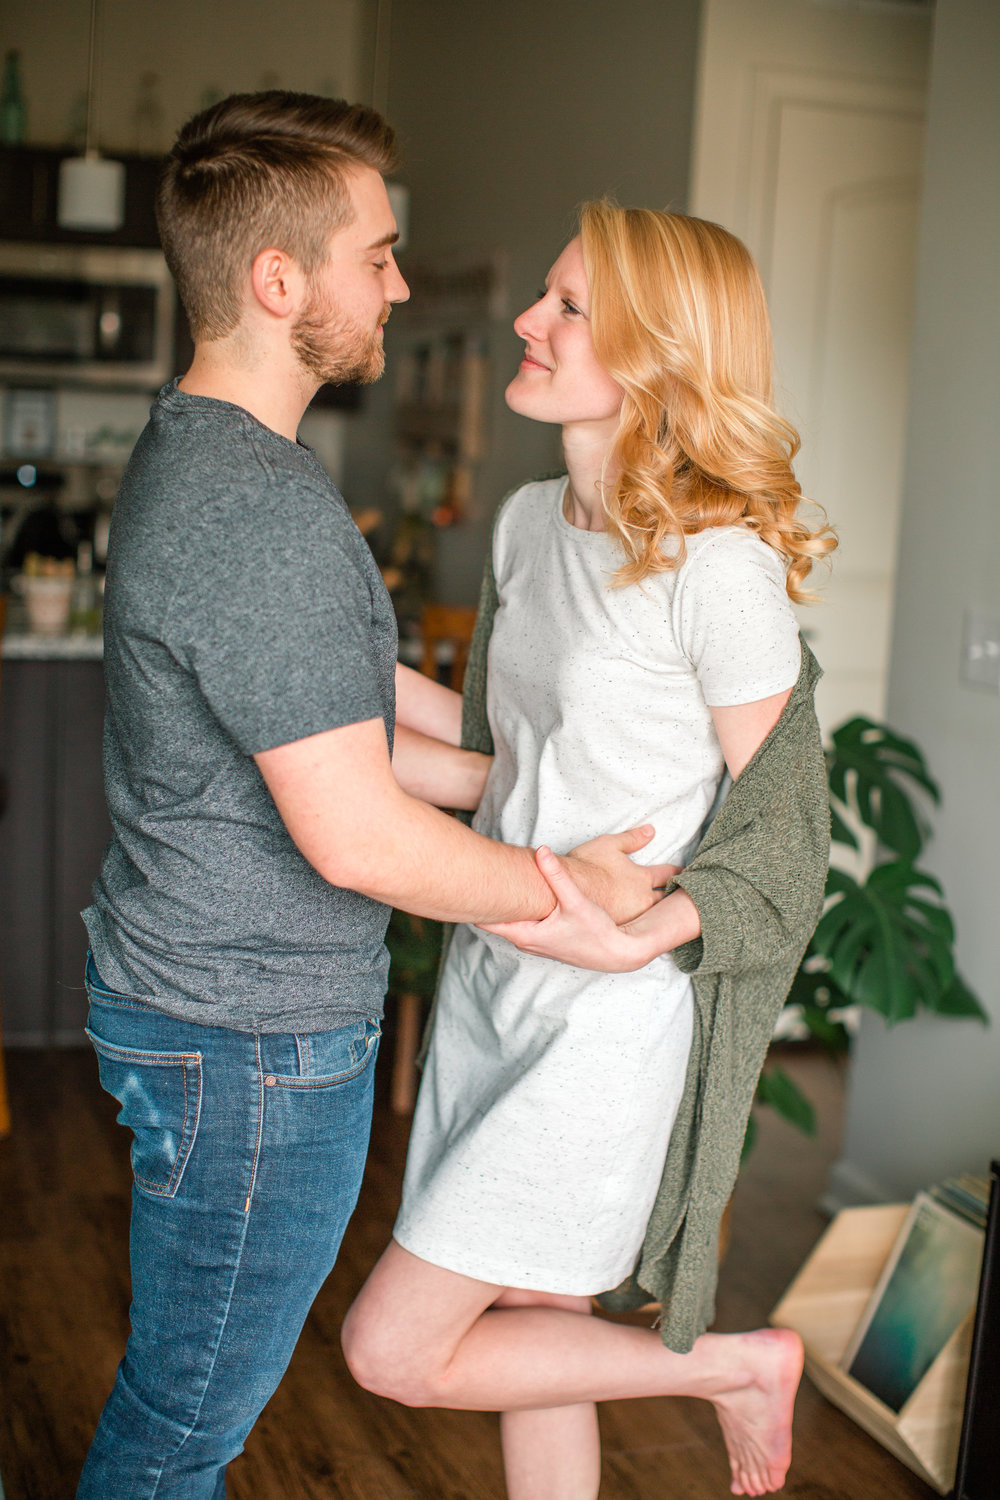 the sweetest couple celebrating one year of marriage at home in lifestyle intimate photos